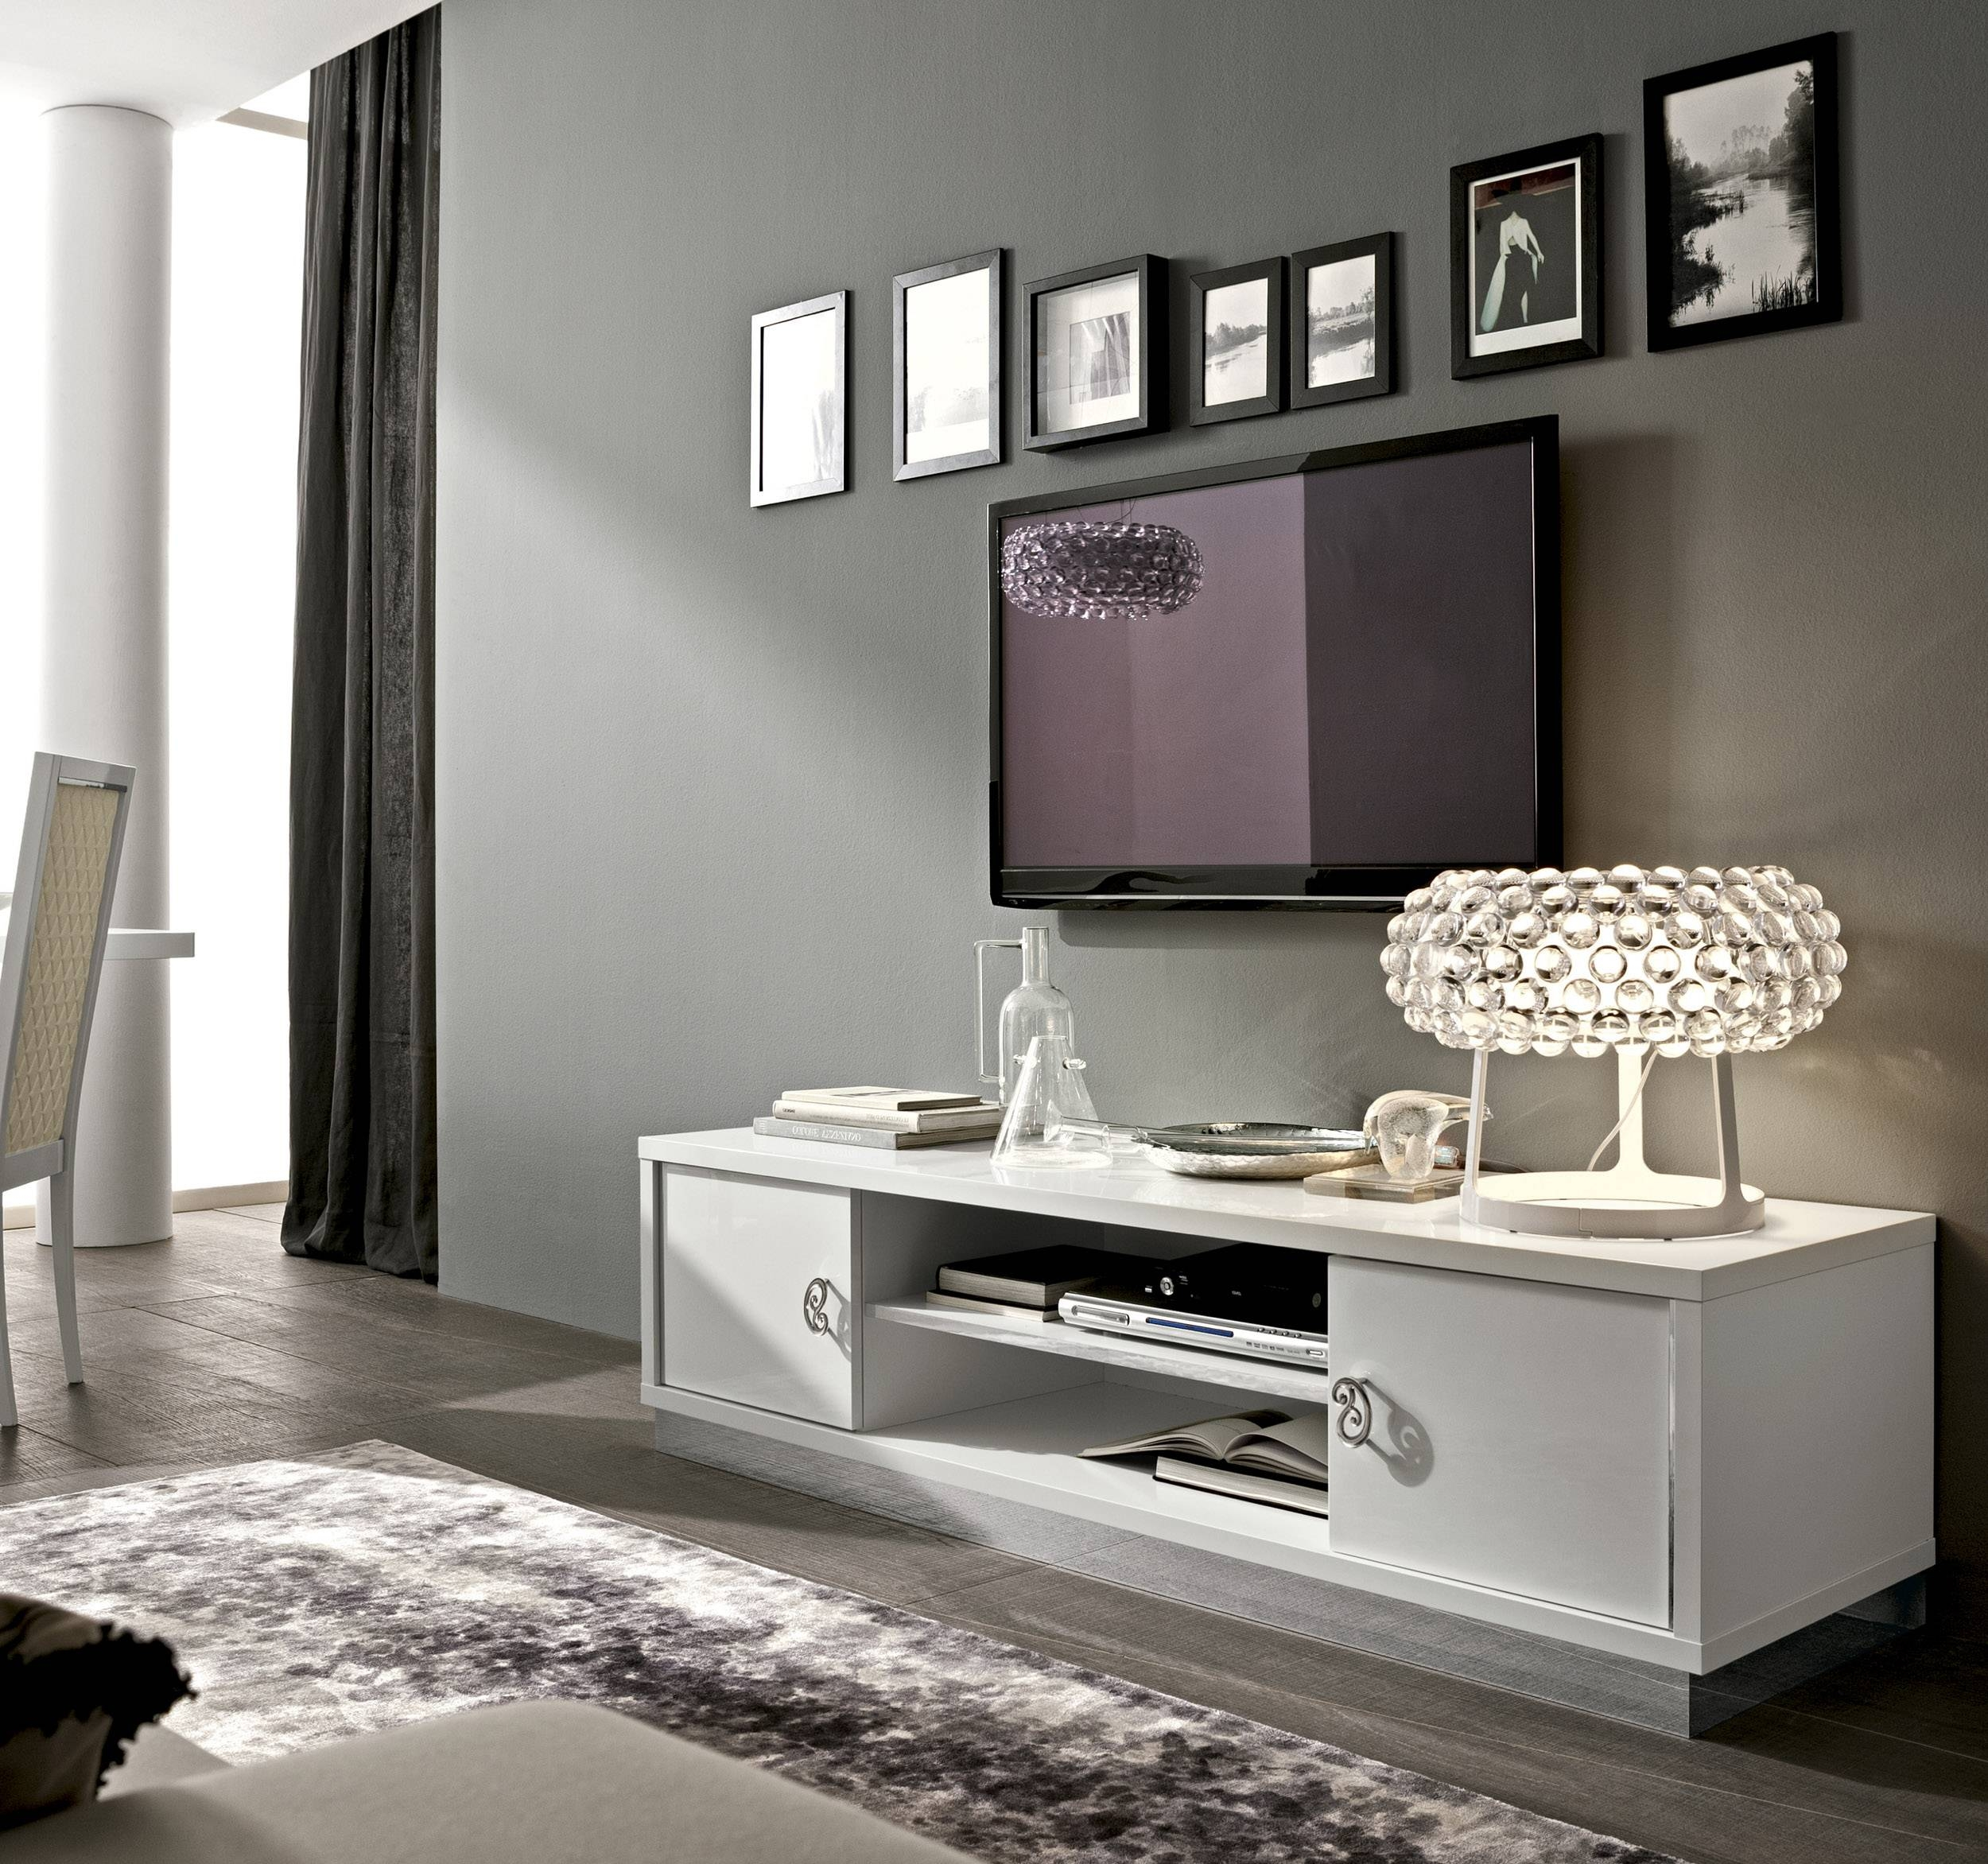 Long White Contemporary Tv Stand Base In Lacquers Washington Dc pertaining to Extra Long Tv Stands (Image 10 of 15)